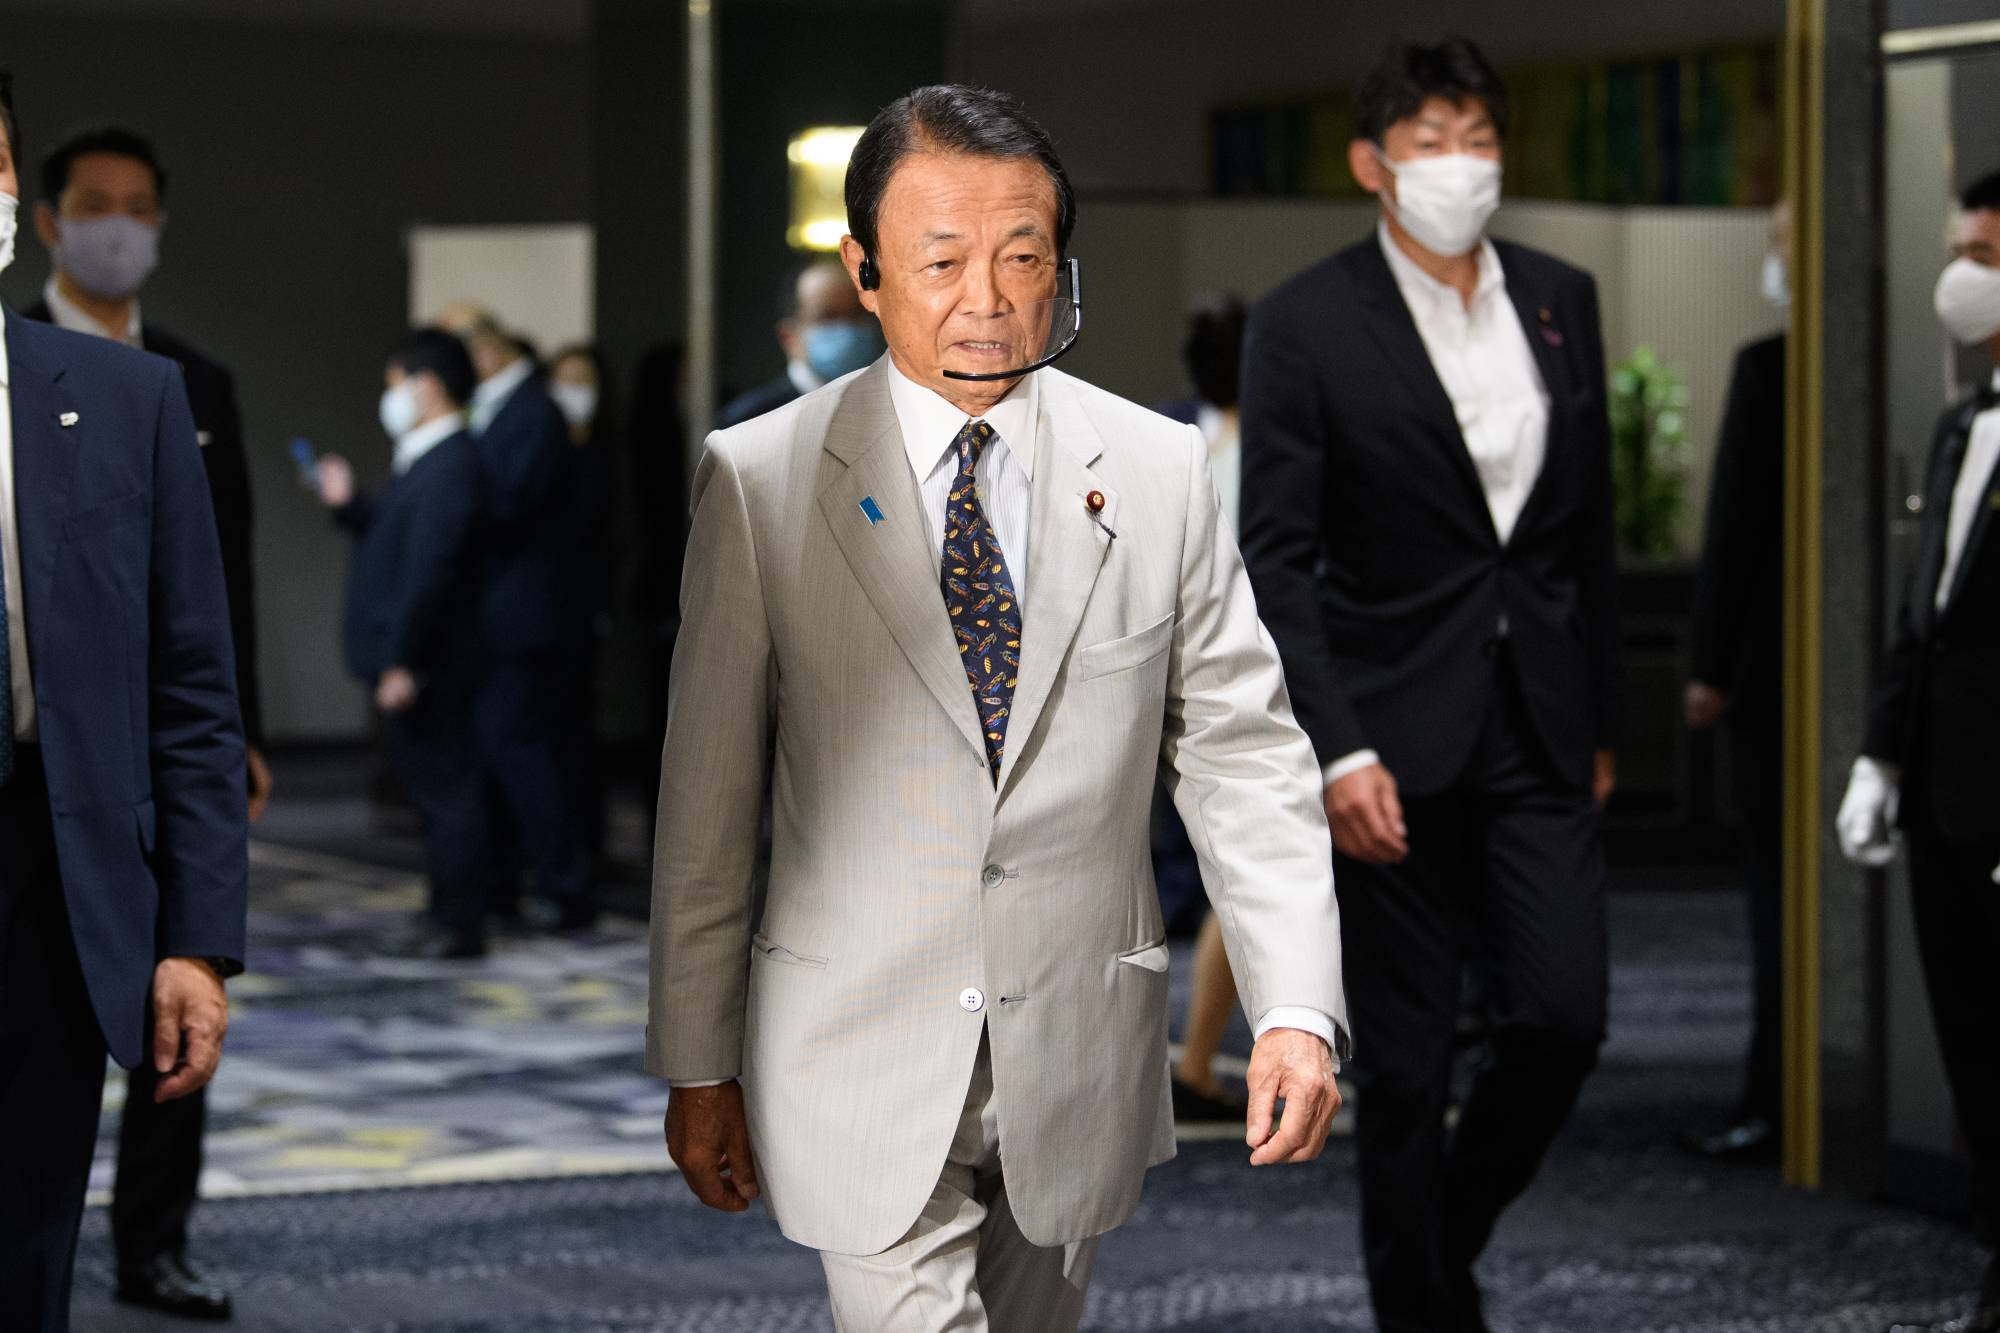 Deputy Prime Minister Taro Aso arrives for a ceremony marking the beginning of Chief Cabinet Secretary Yoshihide Suga's campaign for the Liberal Democratic Party leadership race in Tokyo on Tuesday. | BLOOMBERG